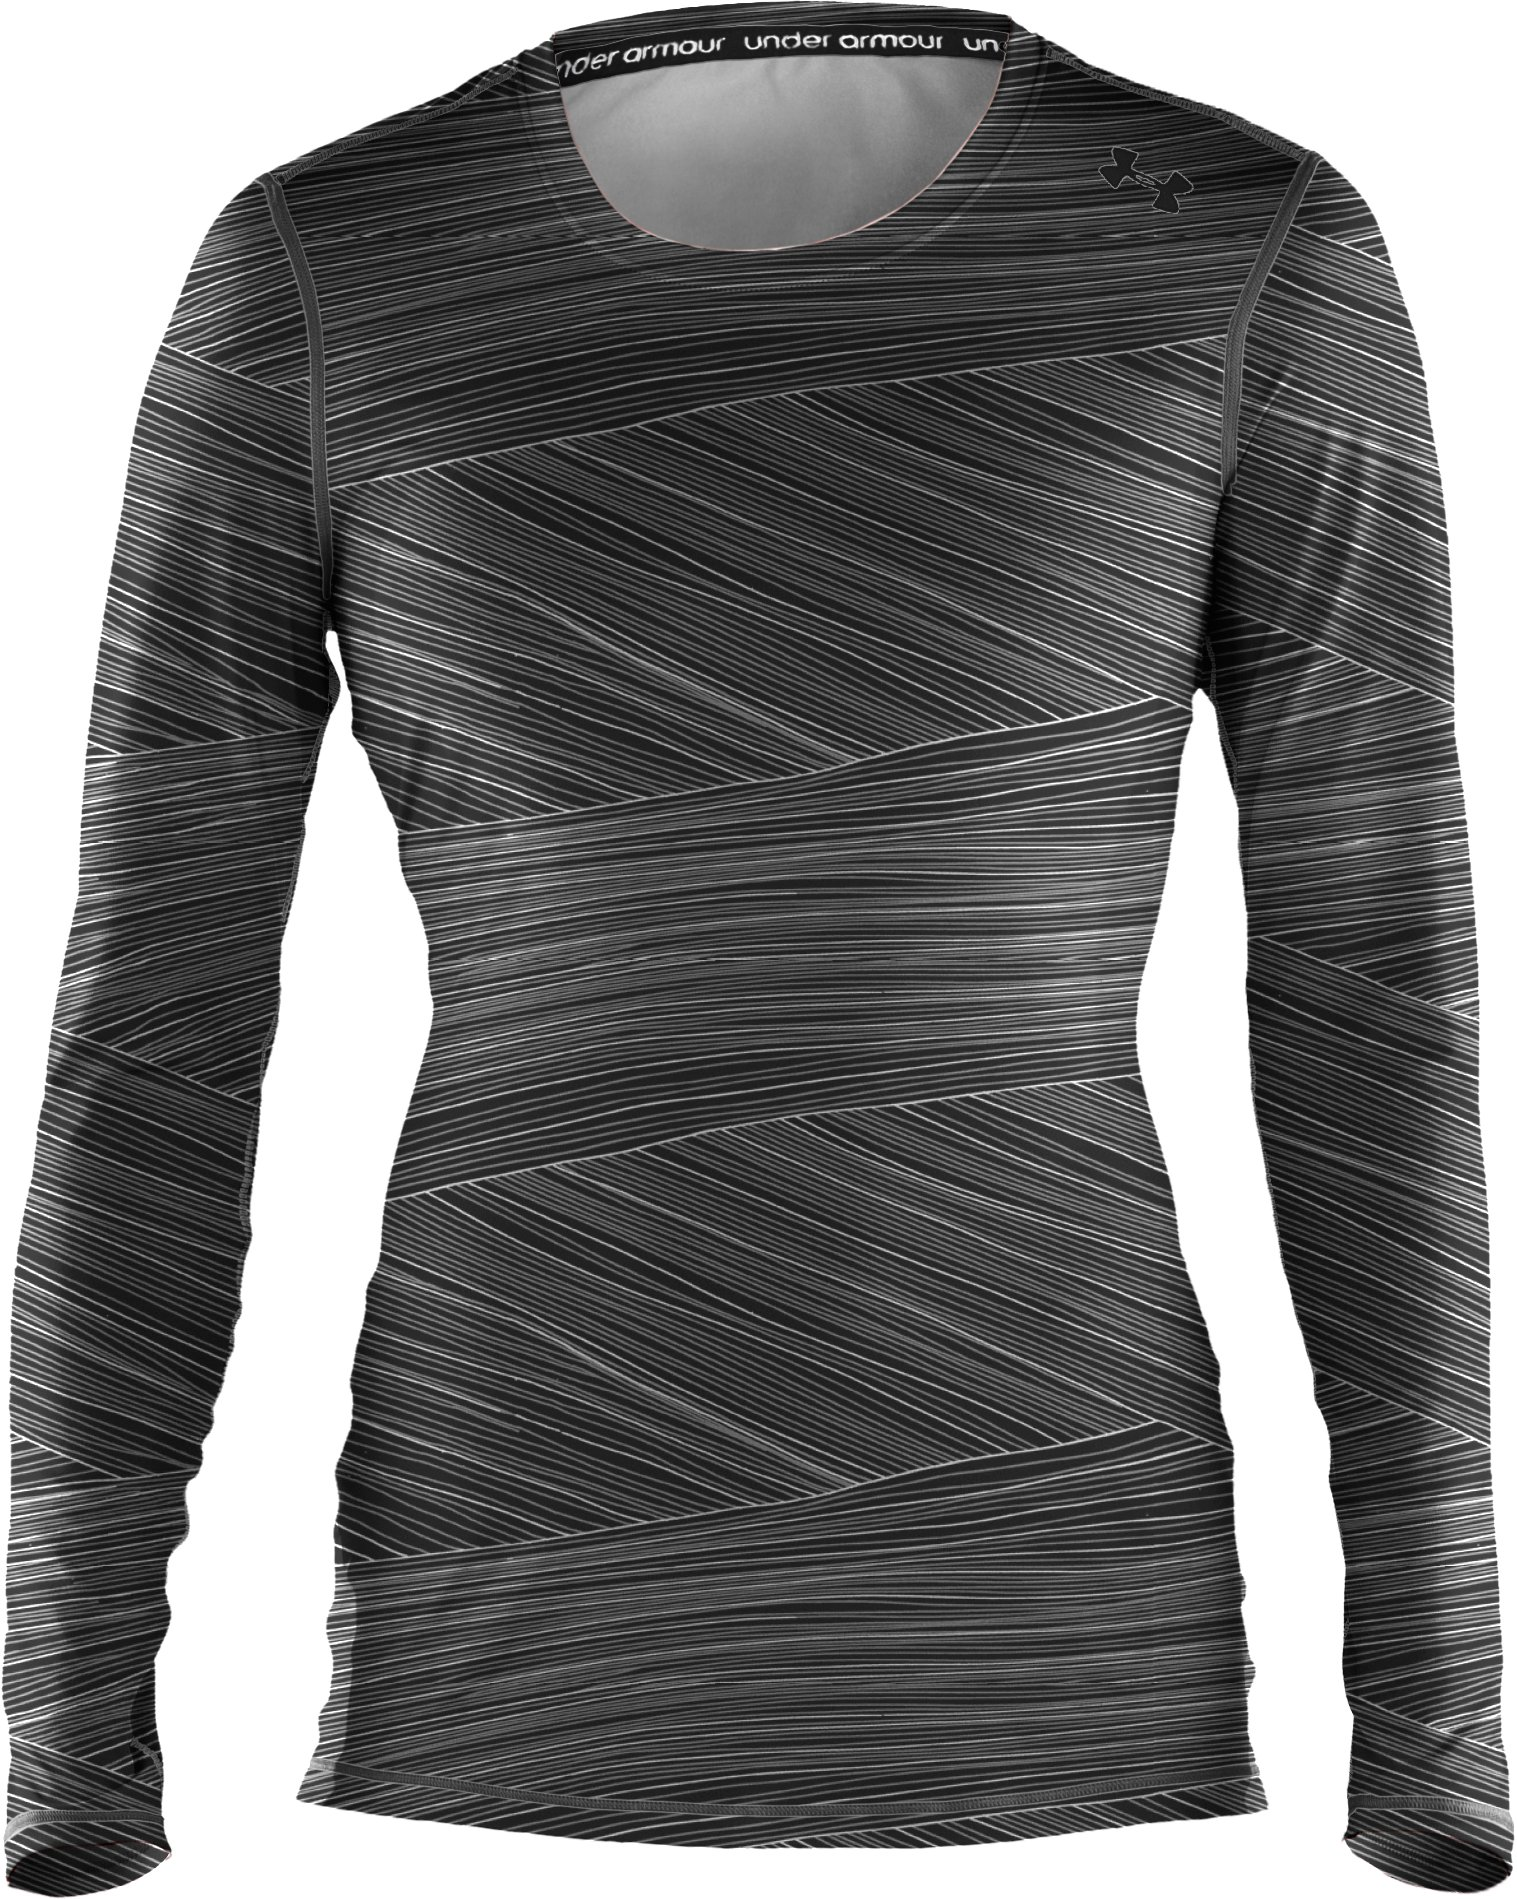 Women's HeatGear® Sonic Printed Long Sleeve, Black